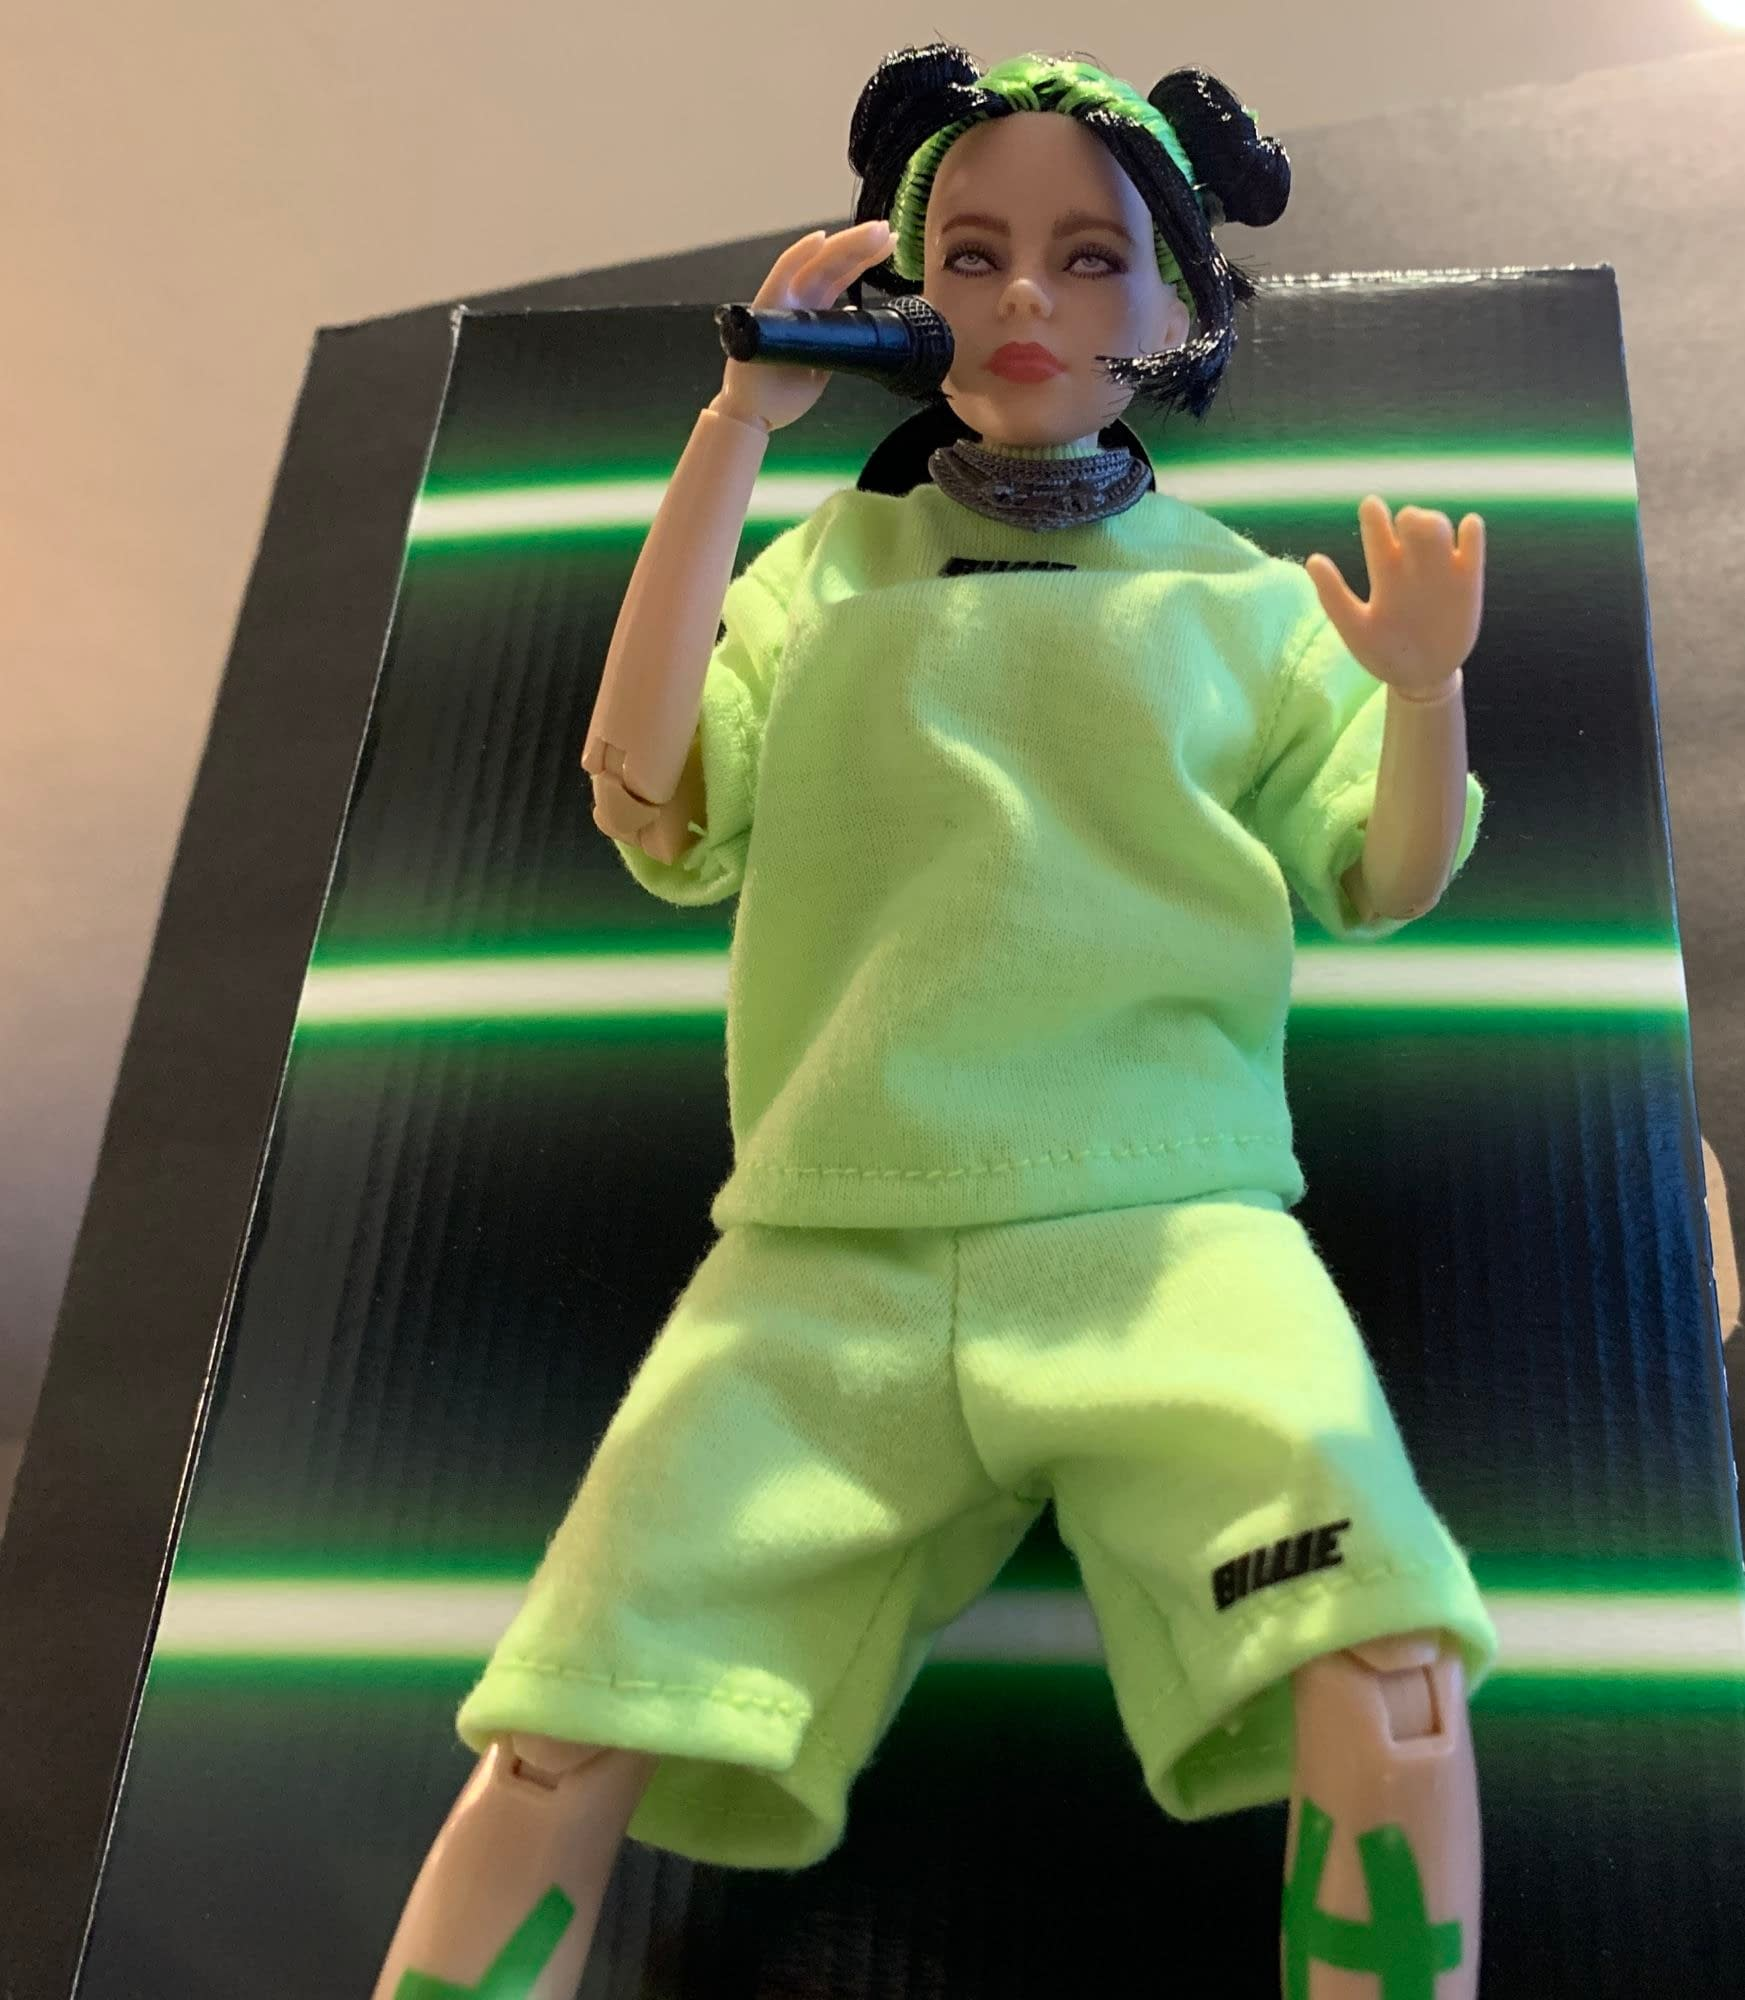 New Billie Eilsh Figures Are Hitting Target Stores From Playmates Now